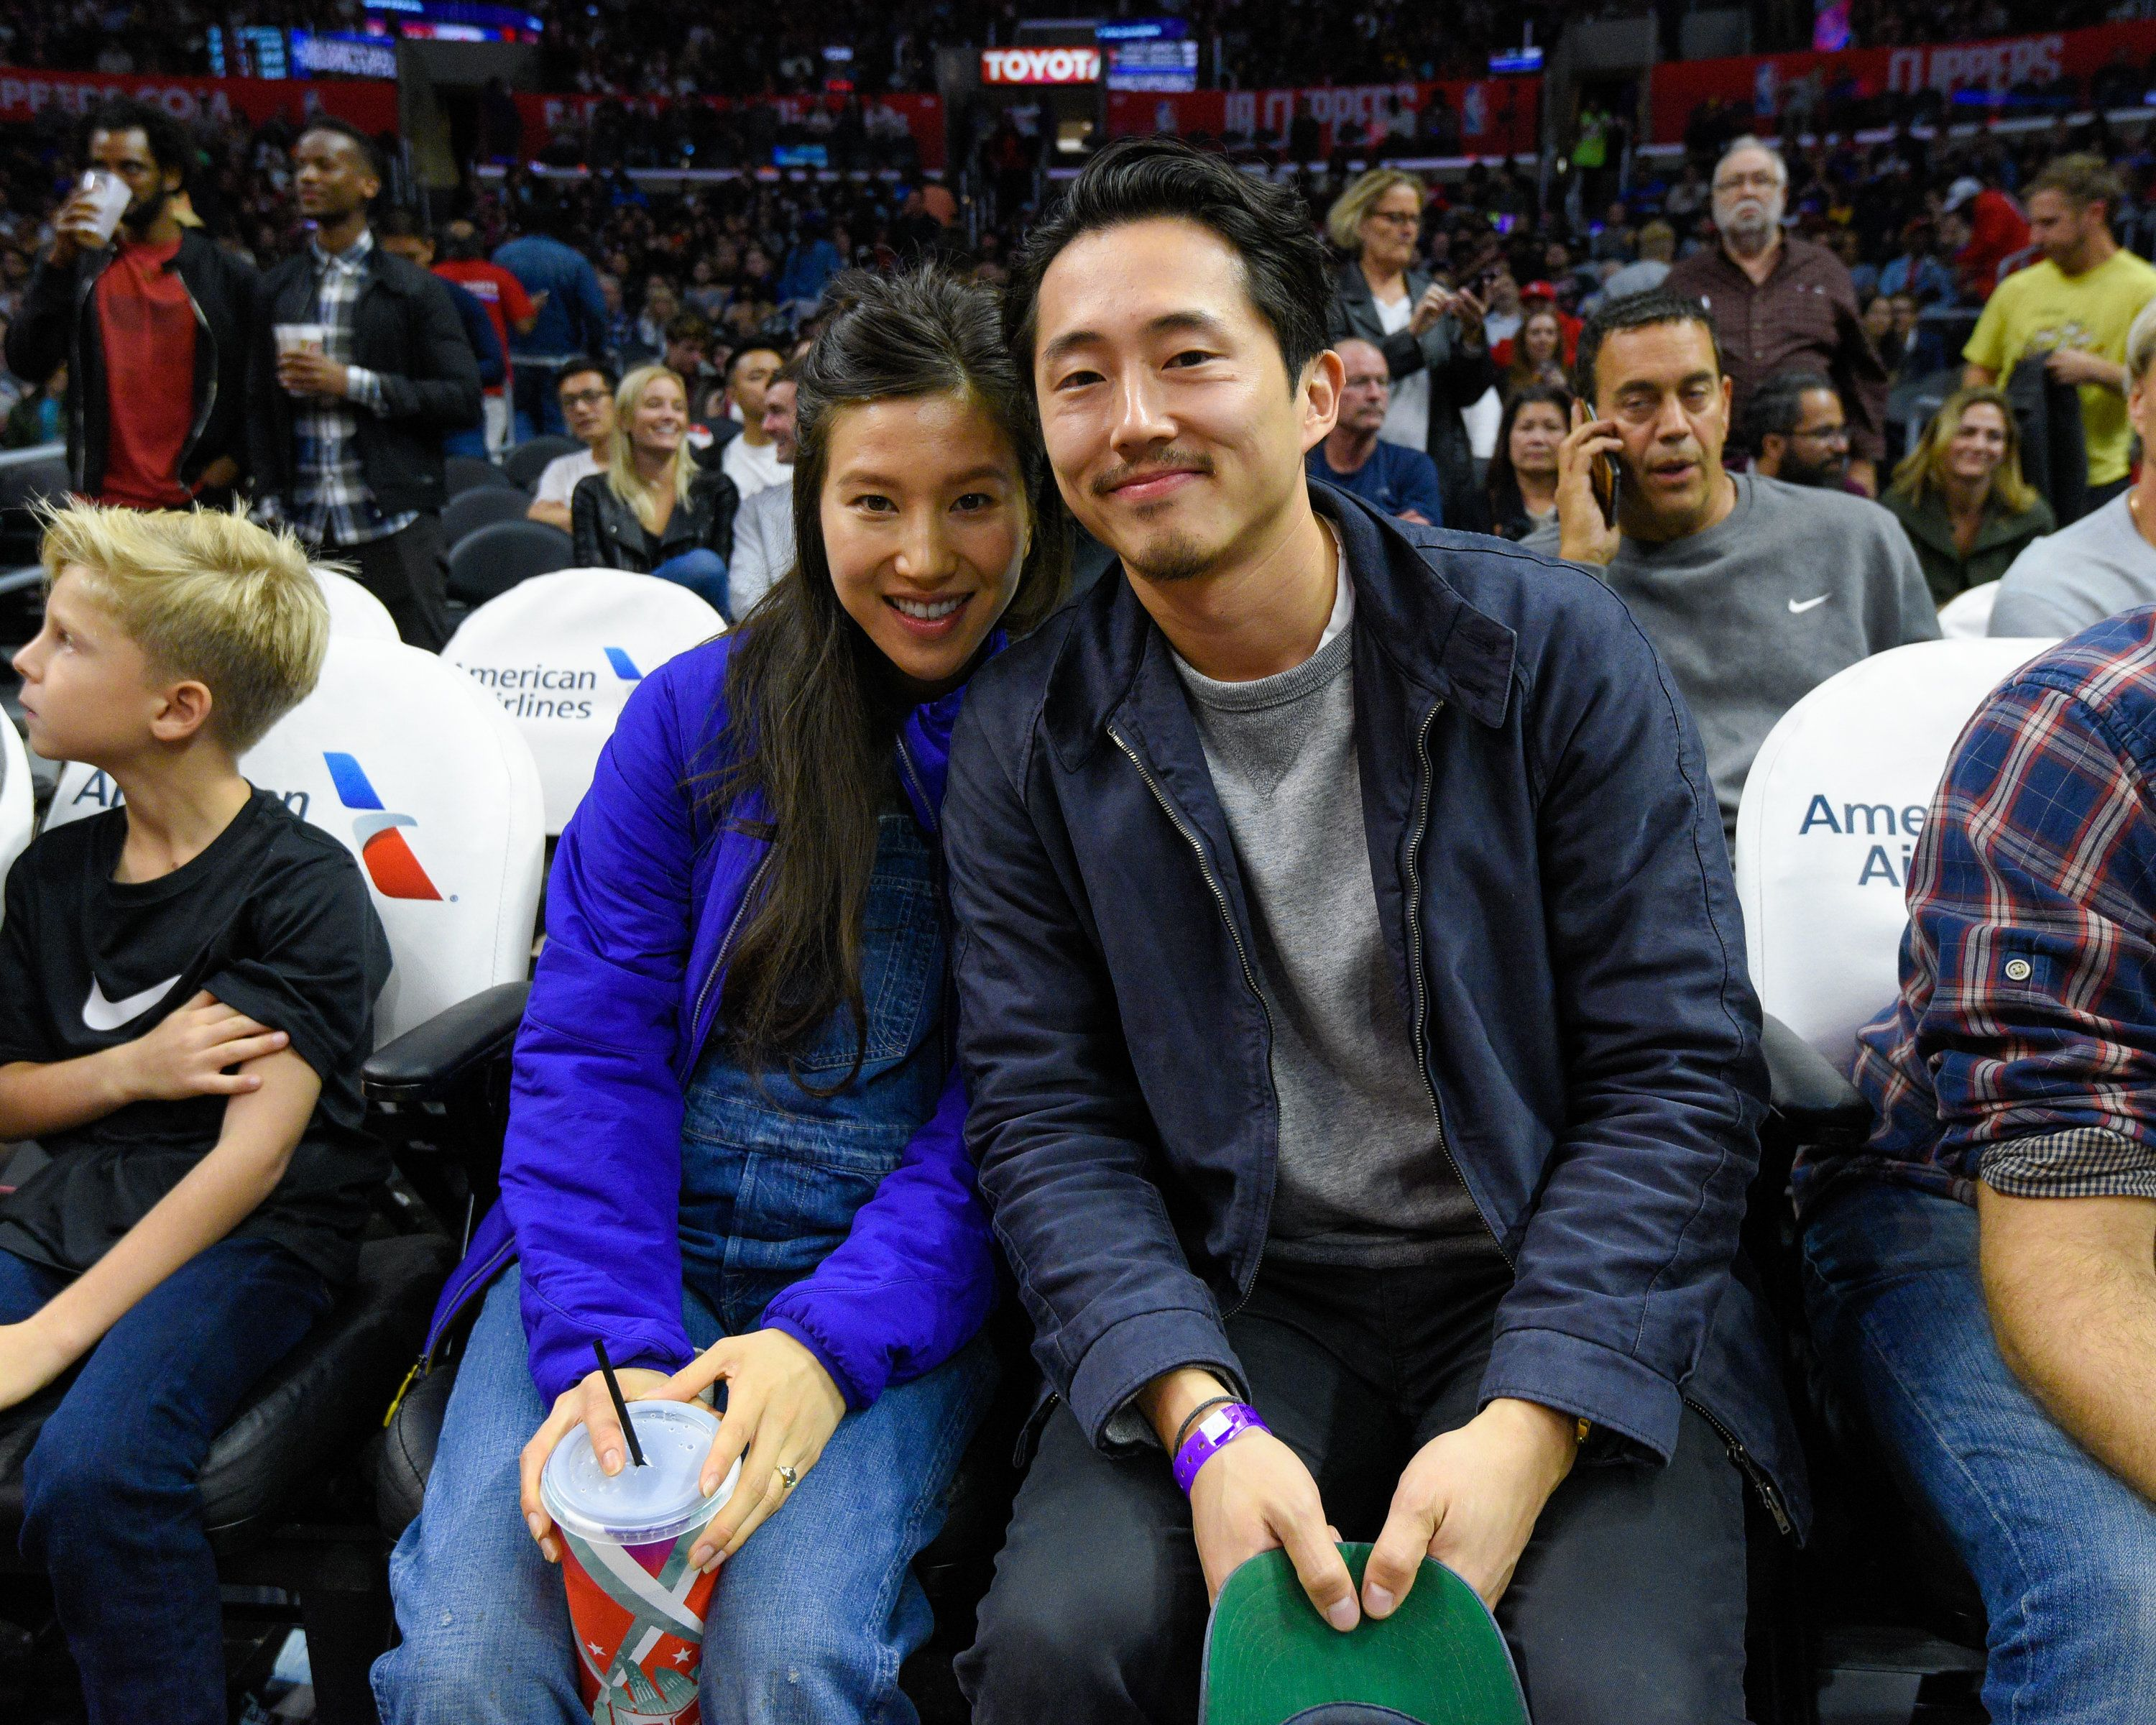 LOS ANGELES, CA - NOVEMBER 07:  Steven Yeun (R) and Joana Pak attend a basketball game between the Detroit Pistons and the Los Angeles Clippers at Staples Center on November 7, 2016 in Los Angeles, California.  (Photo by Noel Vasquez/GC Images)